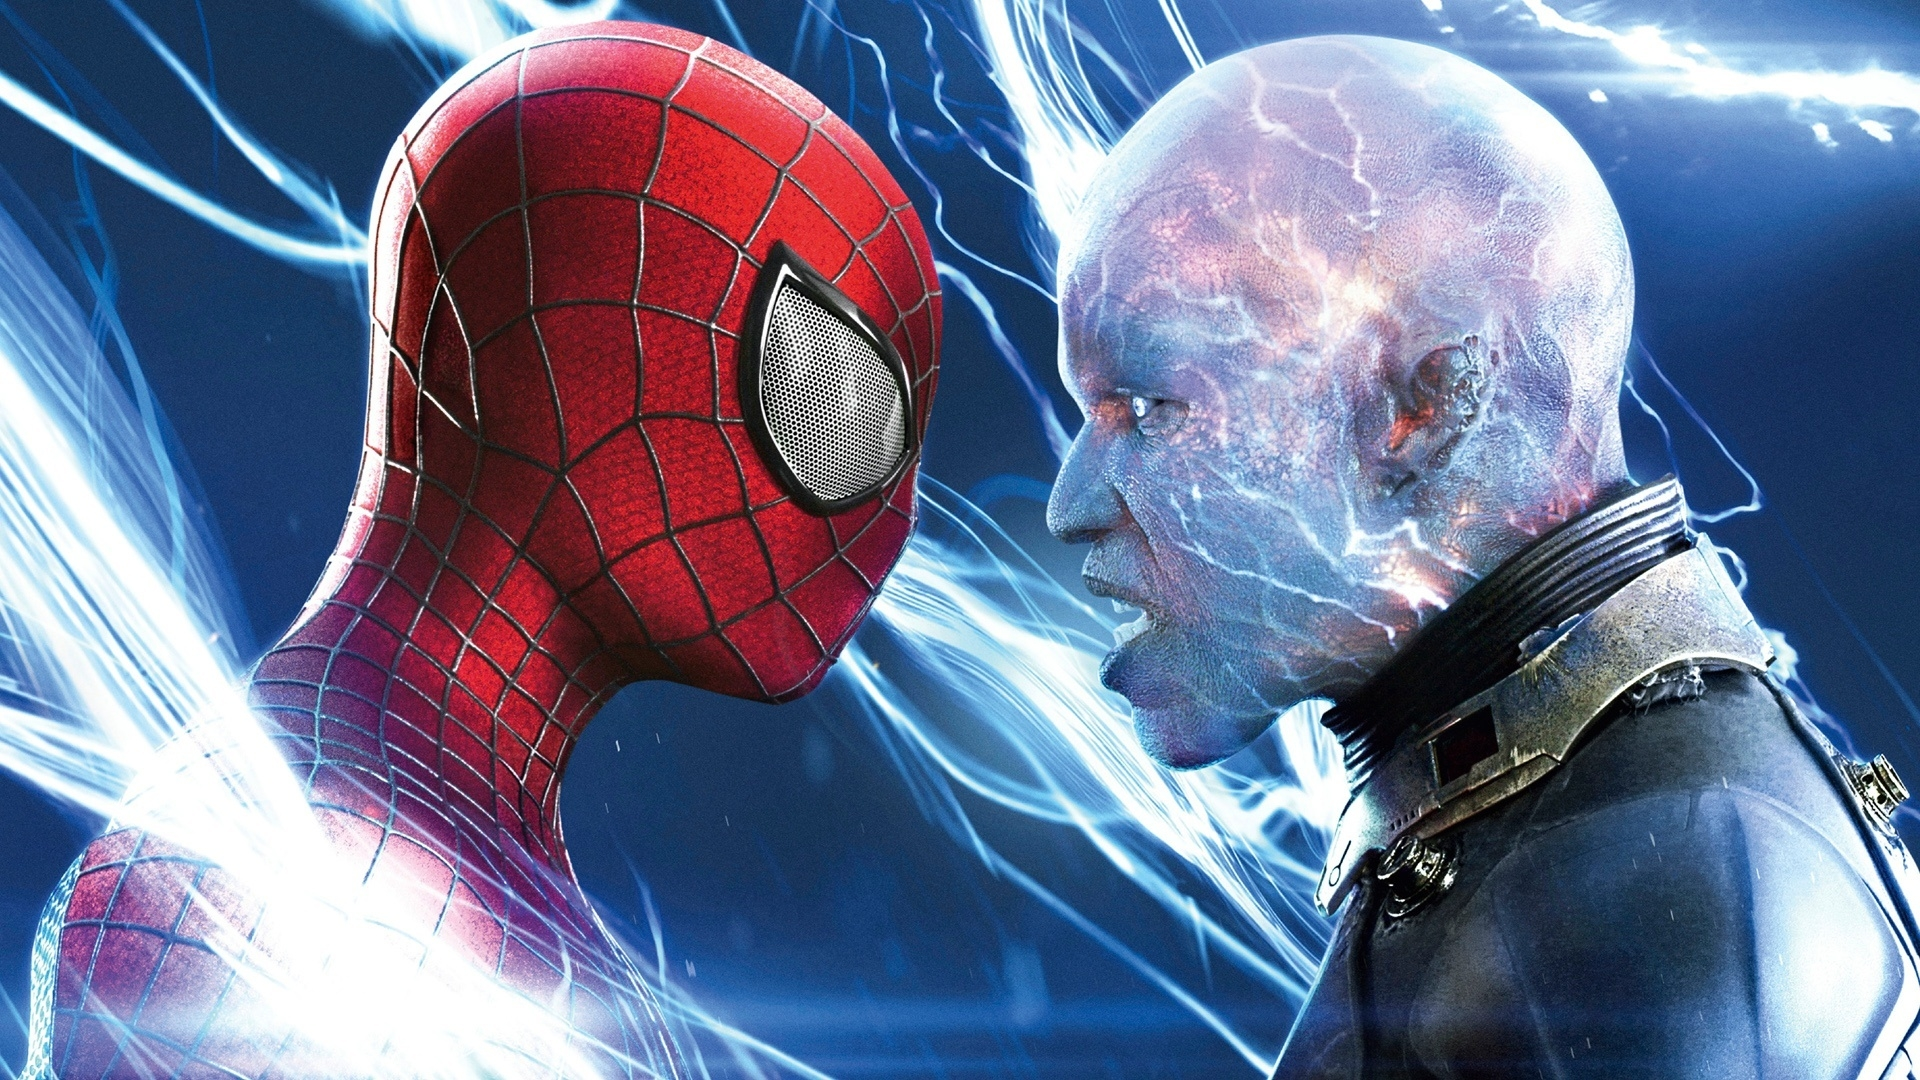 Spiderman vs Electro for 1920 x 1080 HDTV 1080p resolution